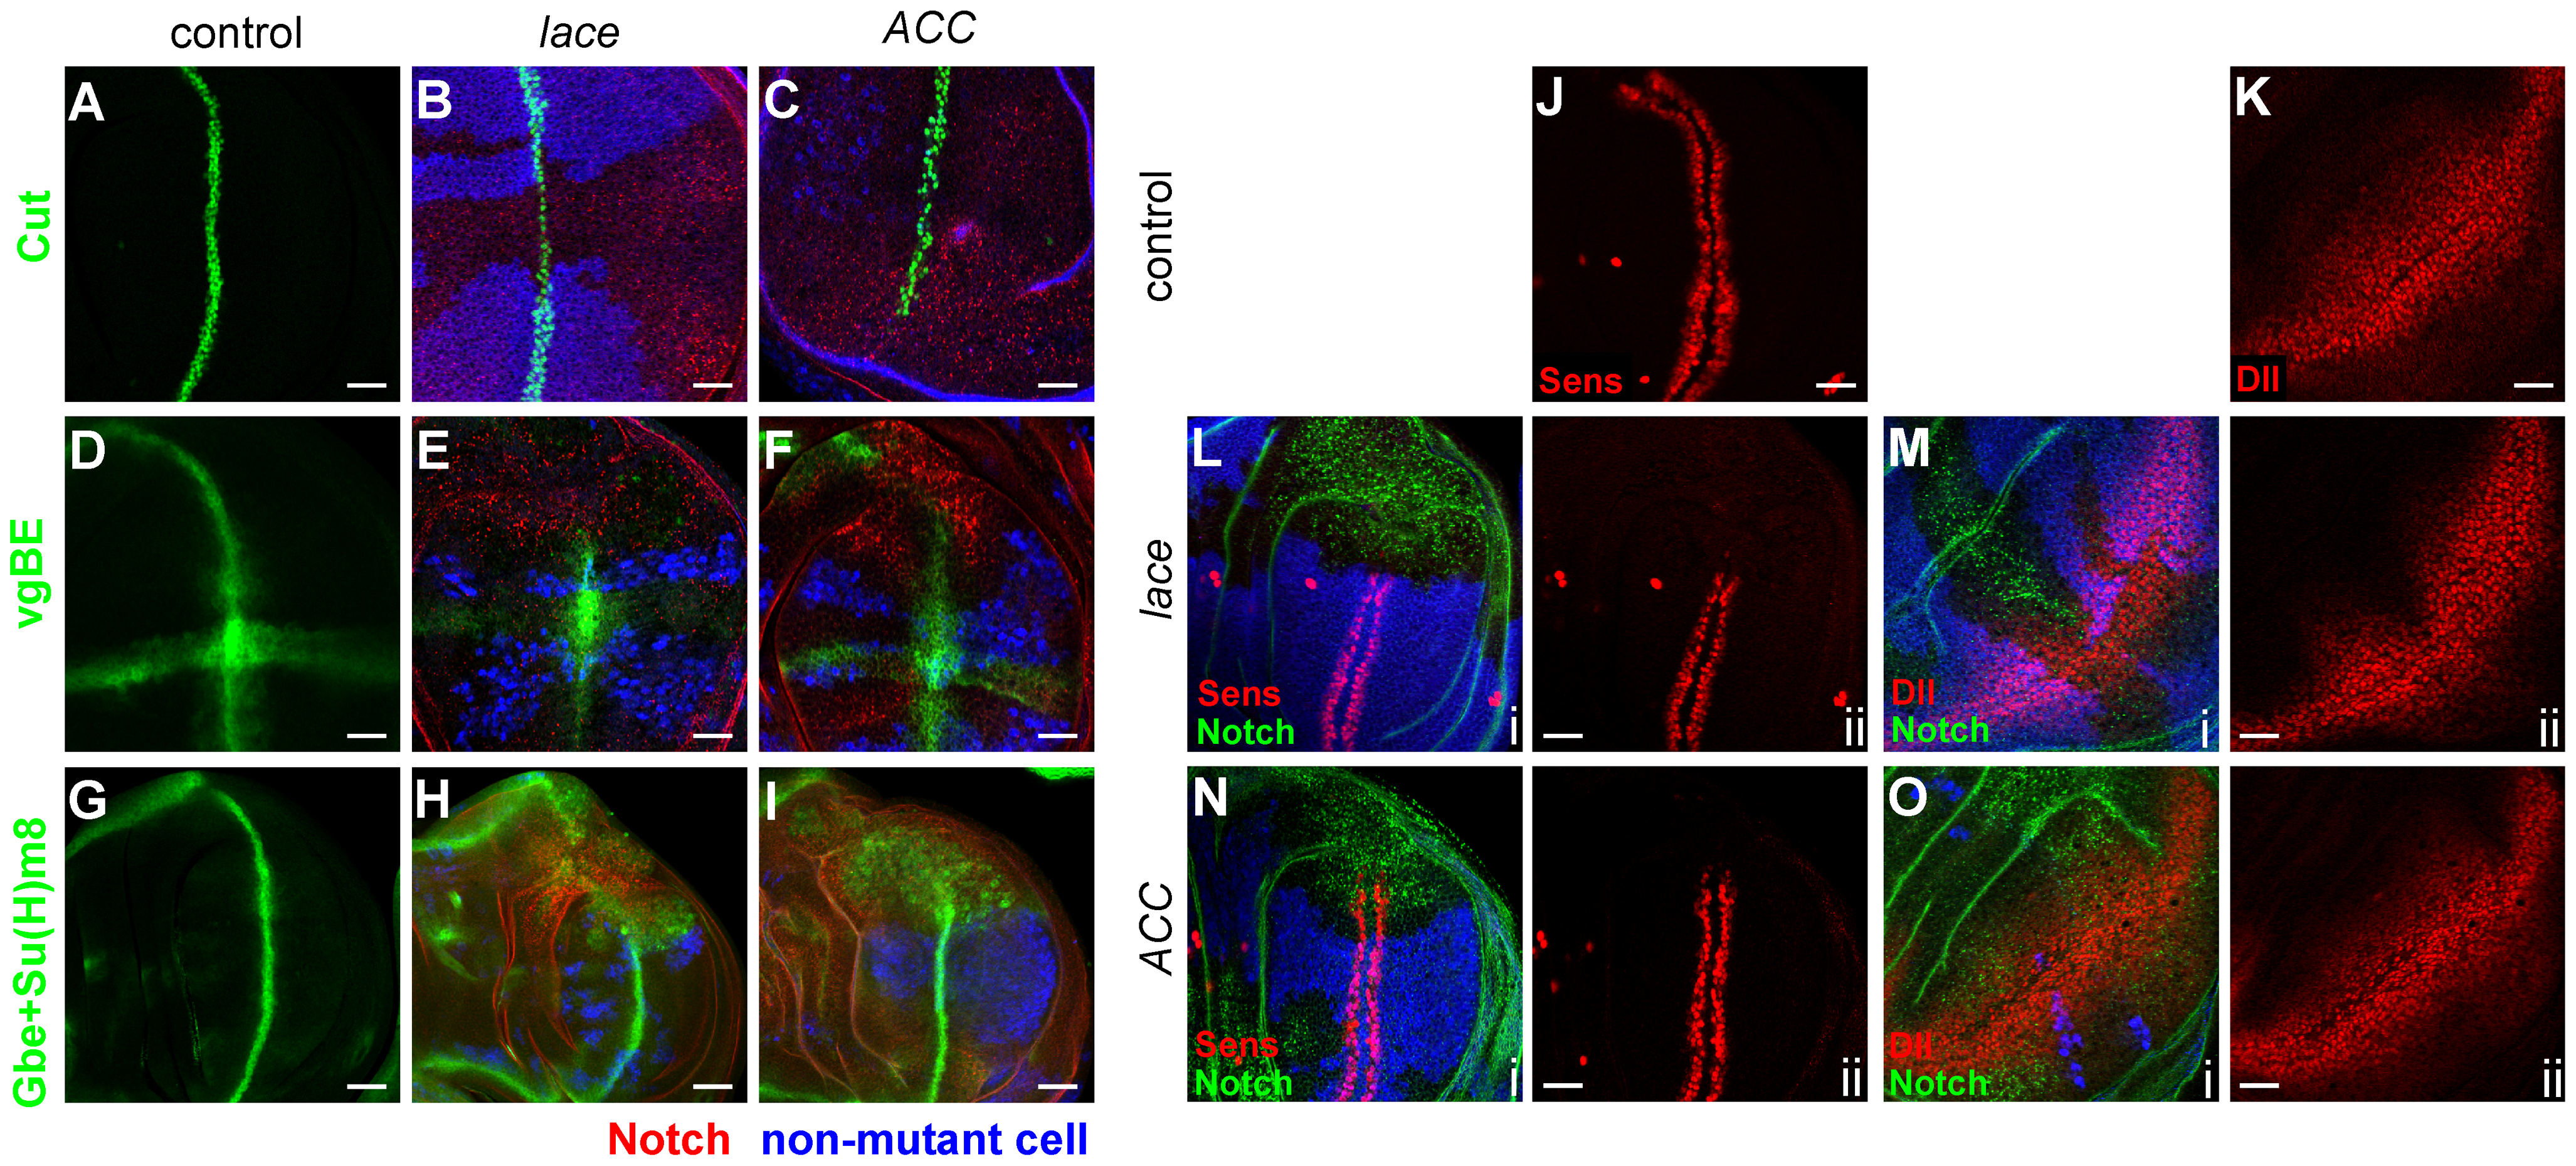 Notch and Wingless signaling abnormalities in <i>lace</i> and <i>ACC</i> mutants.